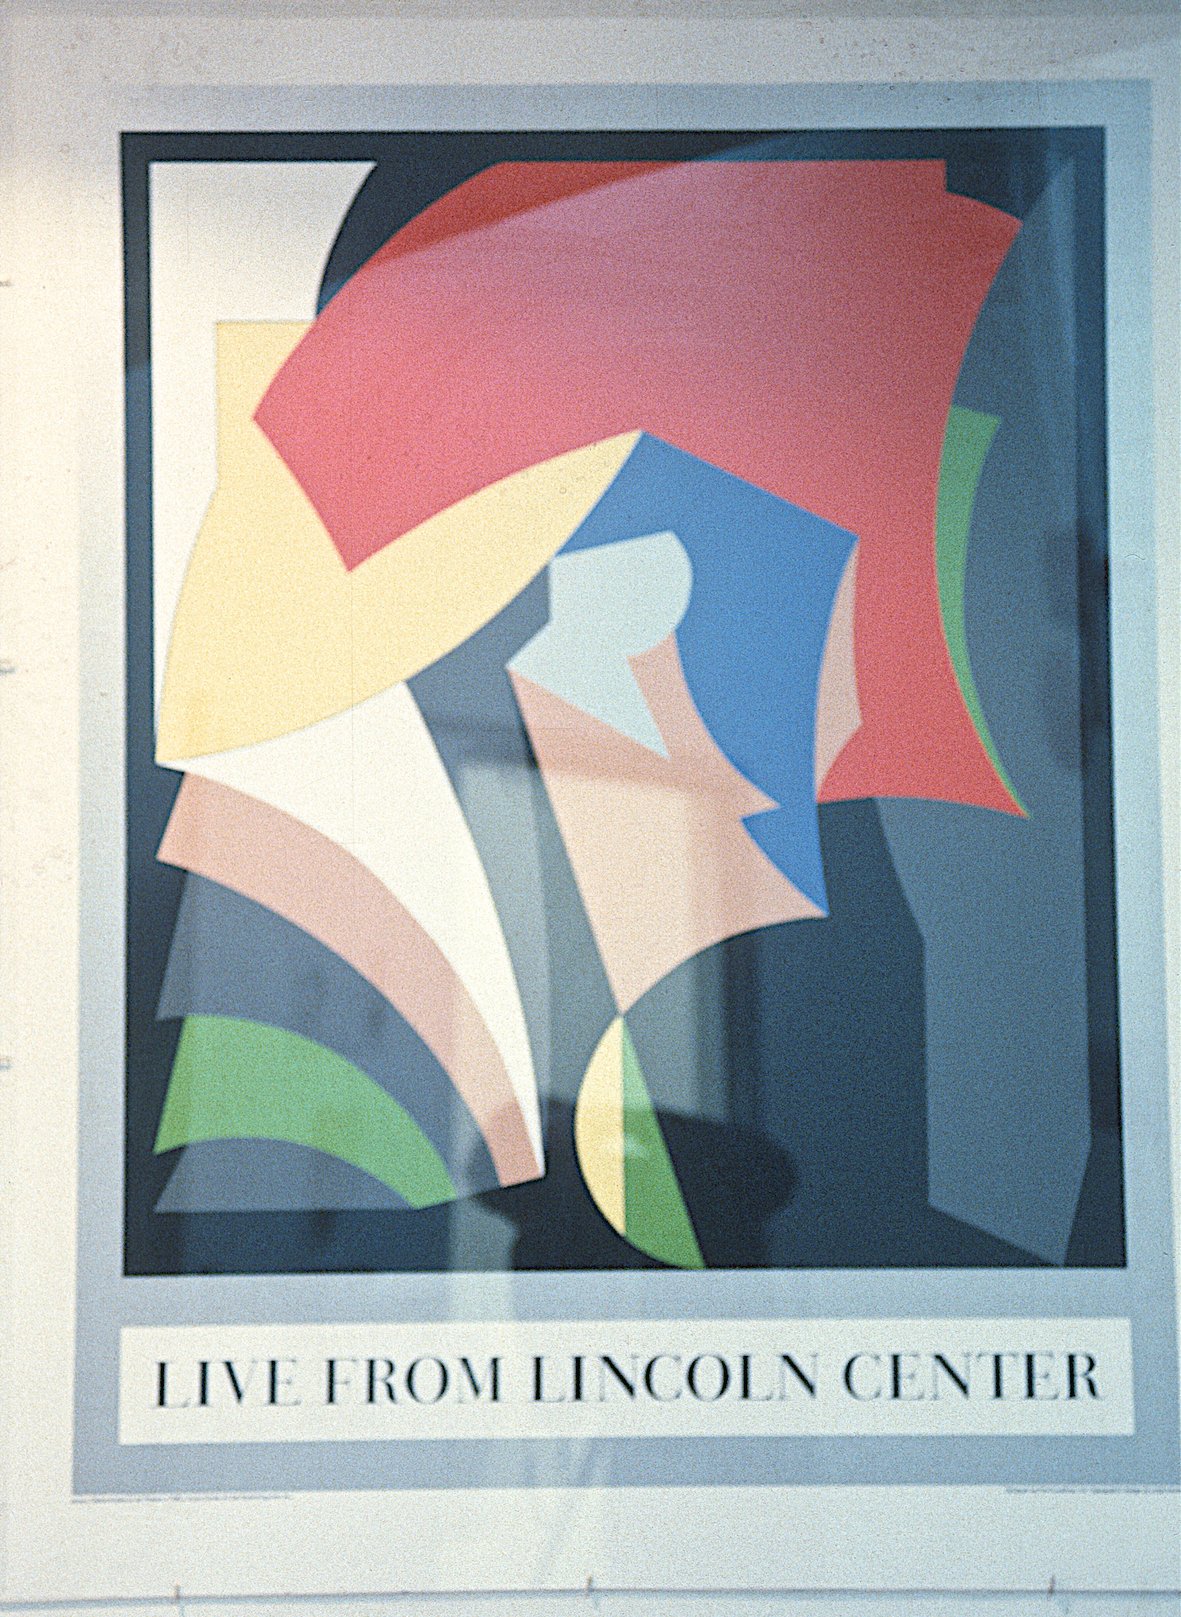 Poster- Live from Lincoln Center, 1985